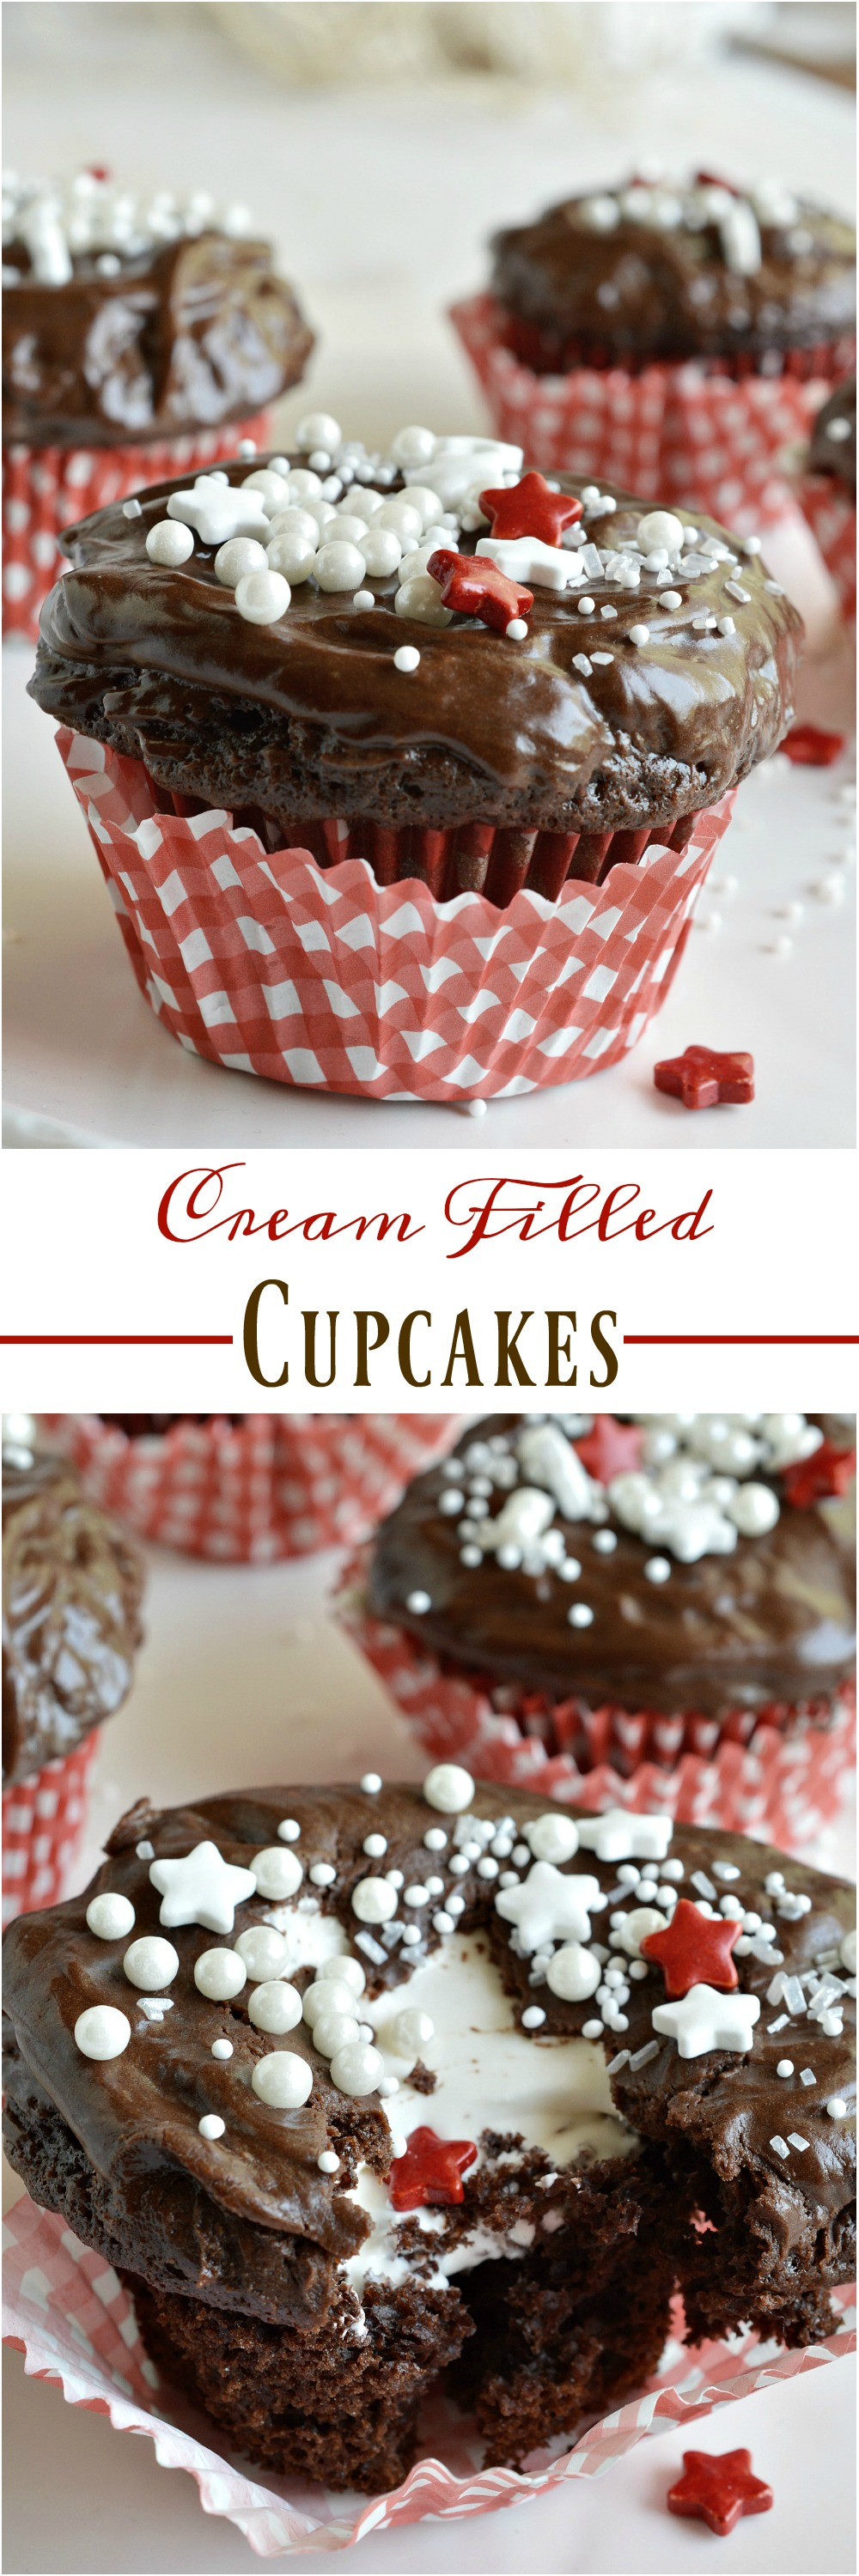 Cream Filled Cupcakes Wonkywonderful